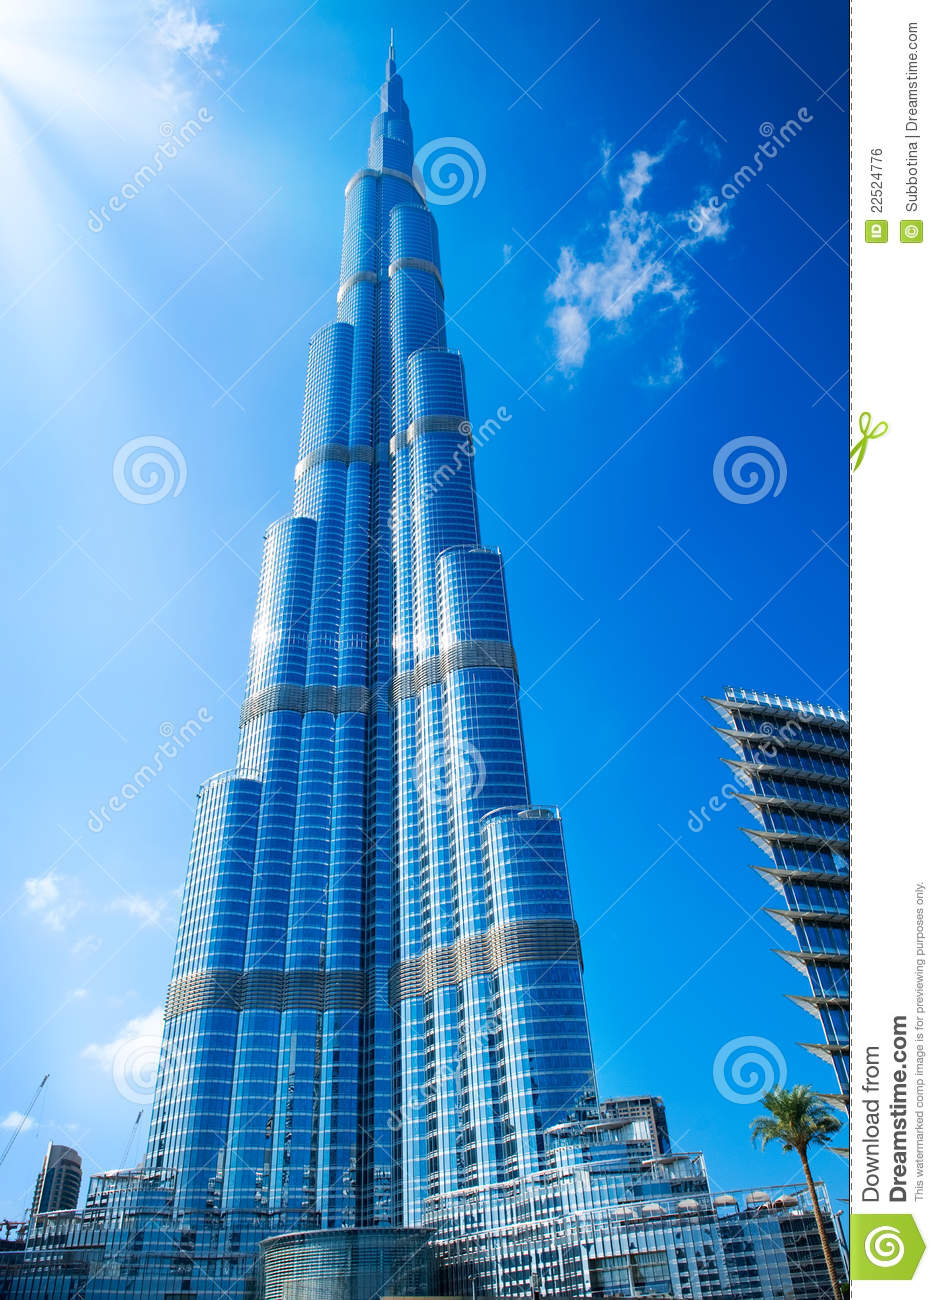 99091b22dc2cdb7e likewise Unique The Best Modern House Design Best Design For You as well Next Tallest Building World Kingdom Tower Jedddah Saudi Arabia moreover 86 Infinity Coast Tower In Brazil furthermore Project 13 10. on dubai modern house plans